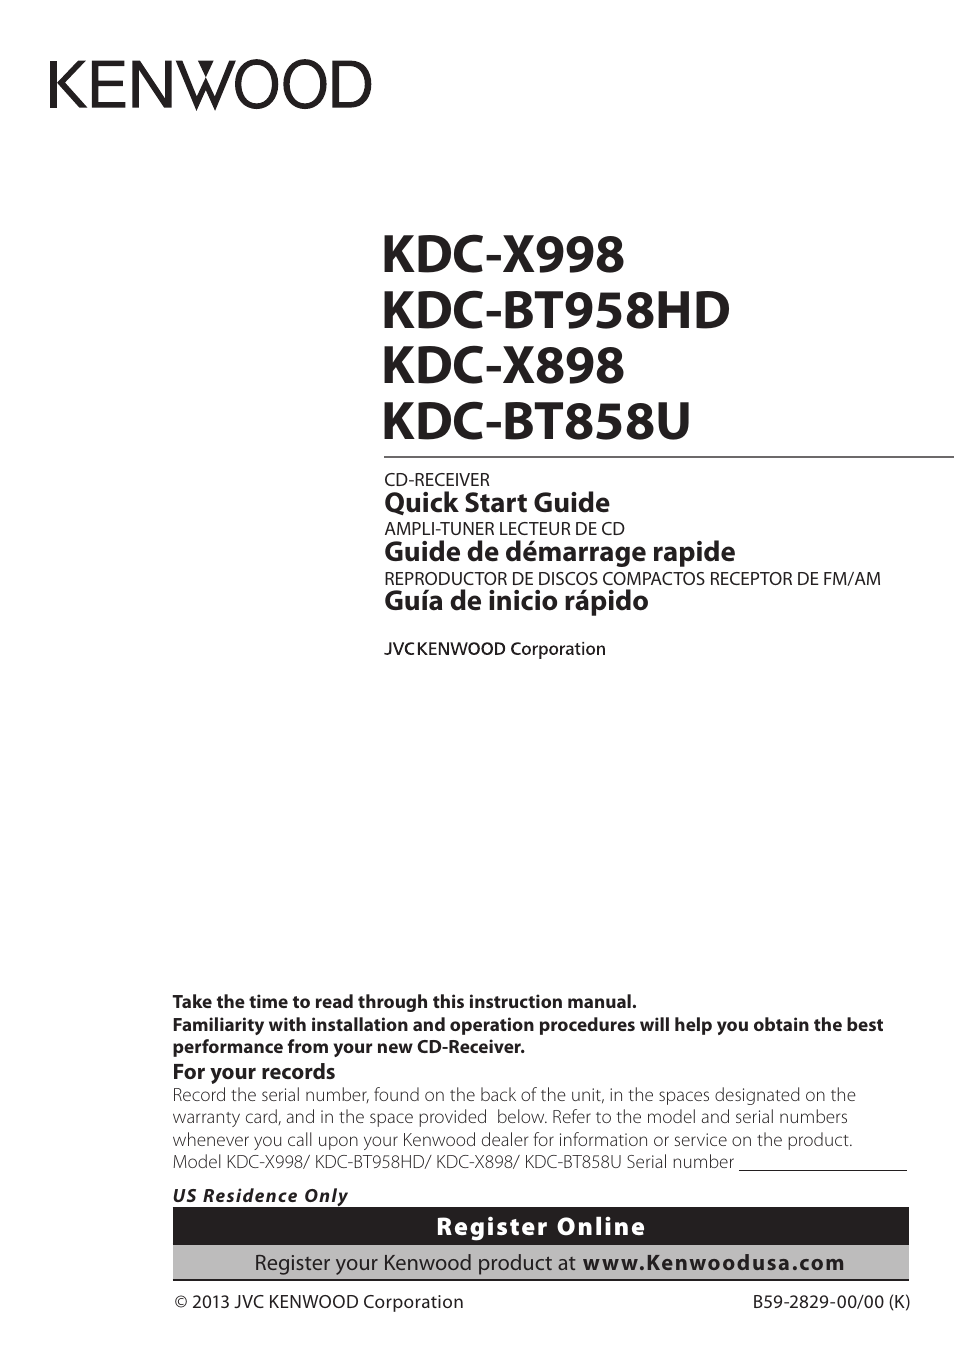 kenwood kdc x898 page1 kenwood kdc x898 user manual 48 pages also for kdc x998 kenwood kmr 555u wiring diagram at soozxer.org